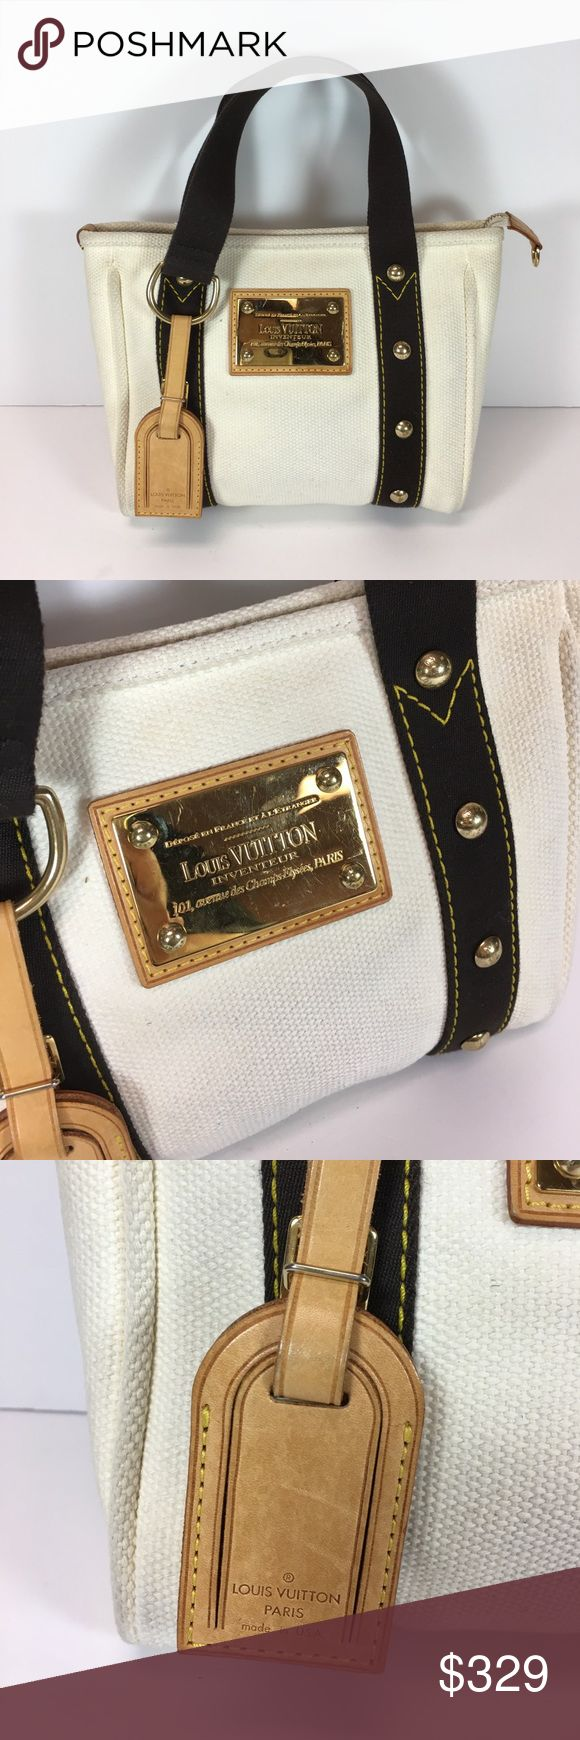 Louis Vuitton Canvas Antigua Canada Tote Cream canvas tote with dark brown handles, gold hardware and tan trim. In good used condition. Interior is very clean with no rips, exterior shows slight darkening on bottom. Louis Vuitton Bags Totes